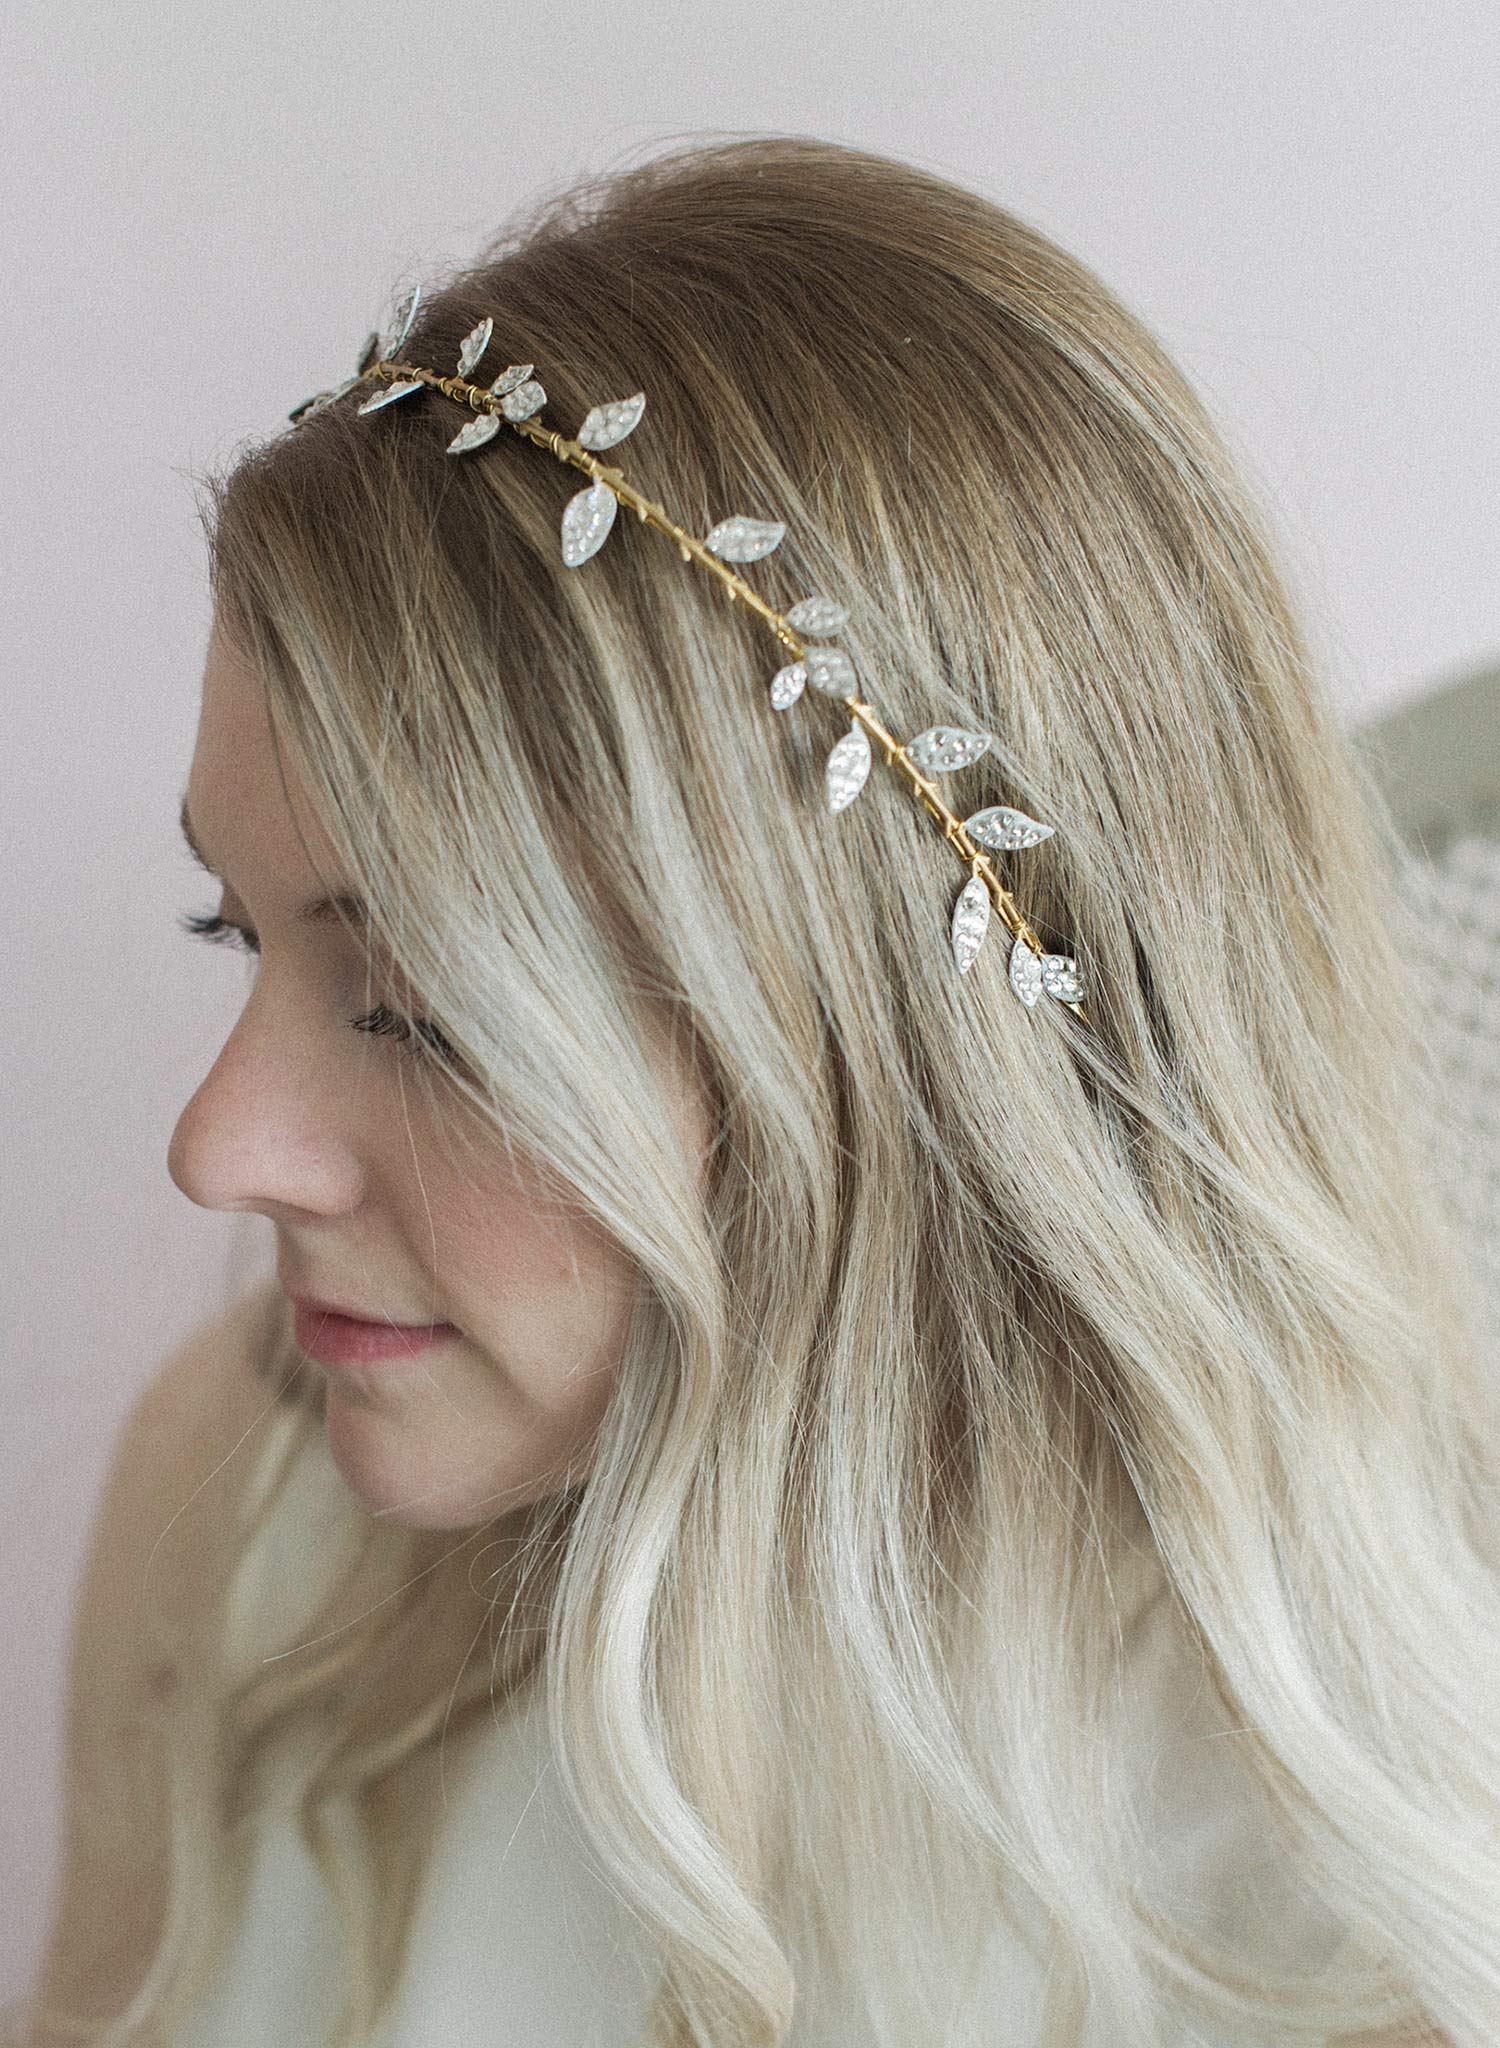 Encrusted branch headband - Style #947